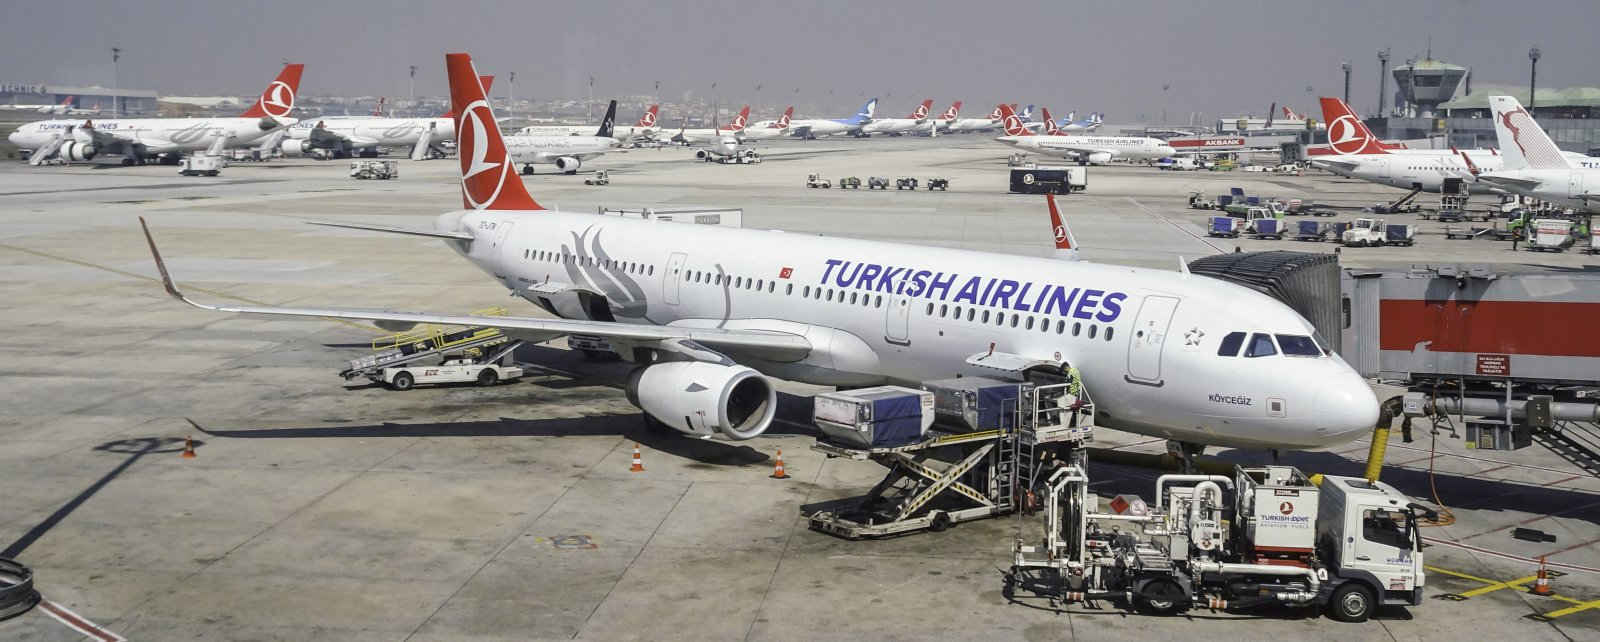 Turkish Airlines Airbus TC-JTN